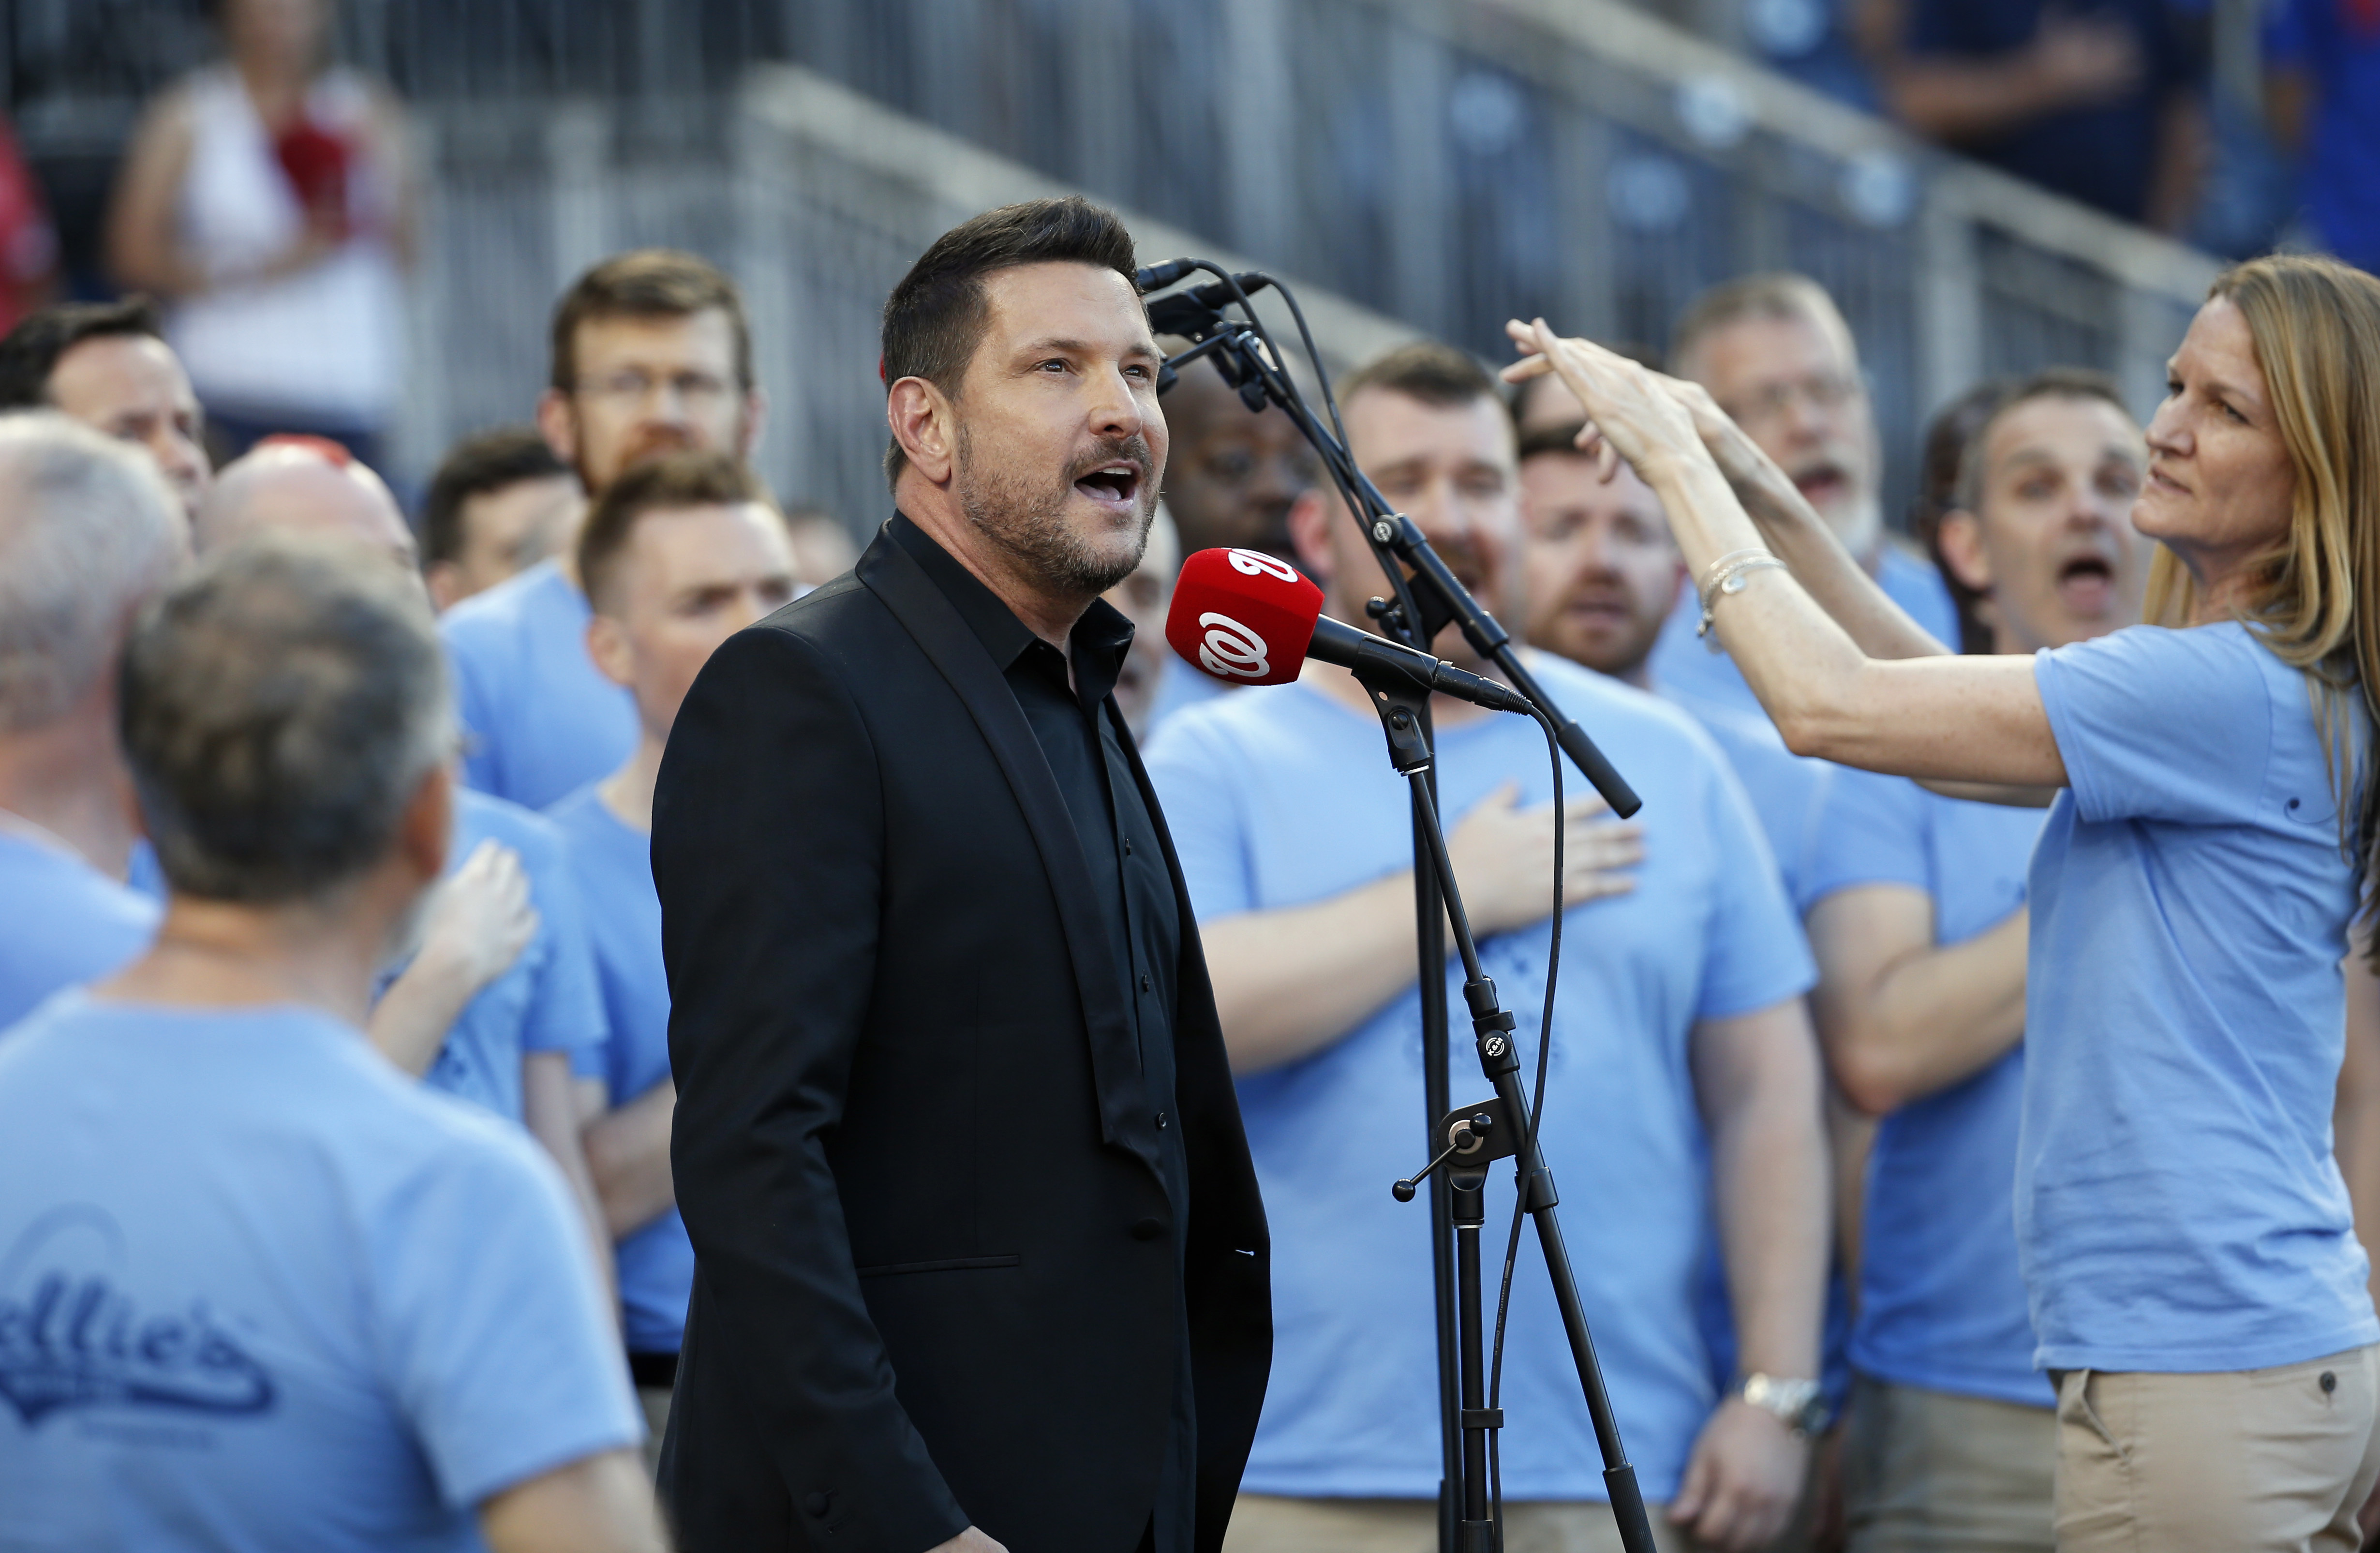 Ty Herndon, center, with the Gay Men's Chorus of Washington, sings the national anthem before a baseball game between the Washington Nationals and the Chicago Cubs at Nationals Park, Tuesday, June 14, 2016, in Washington. The Washington Nationals are host